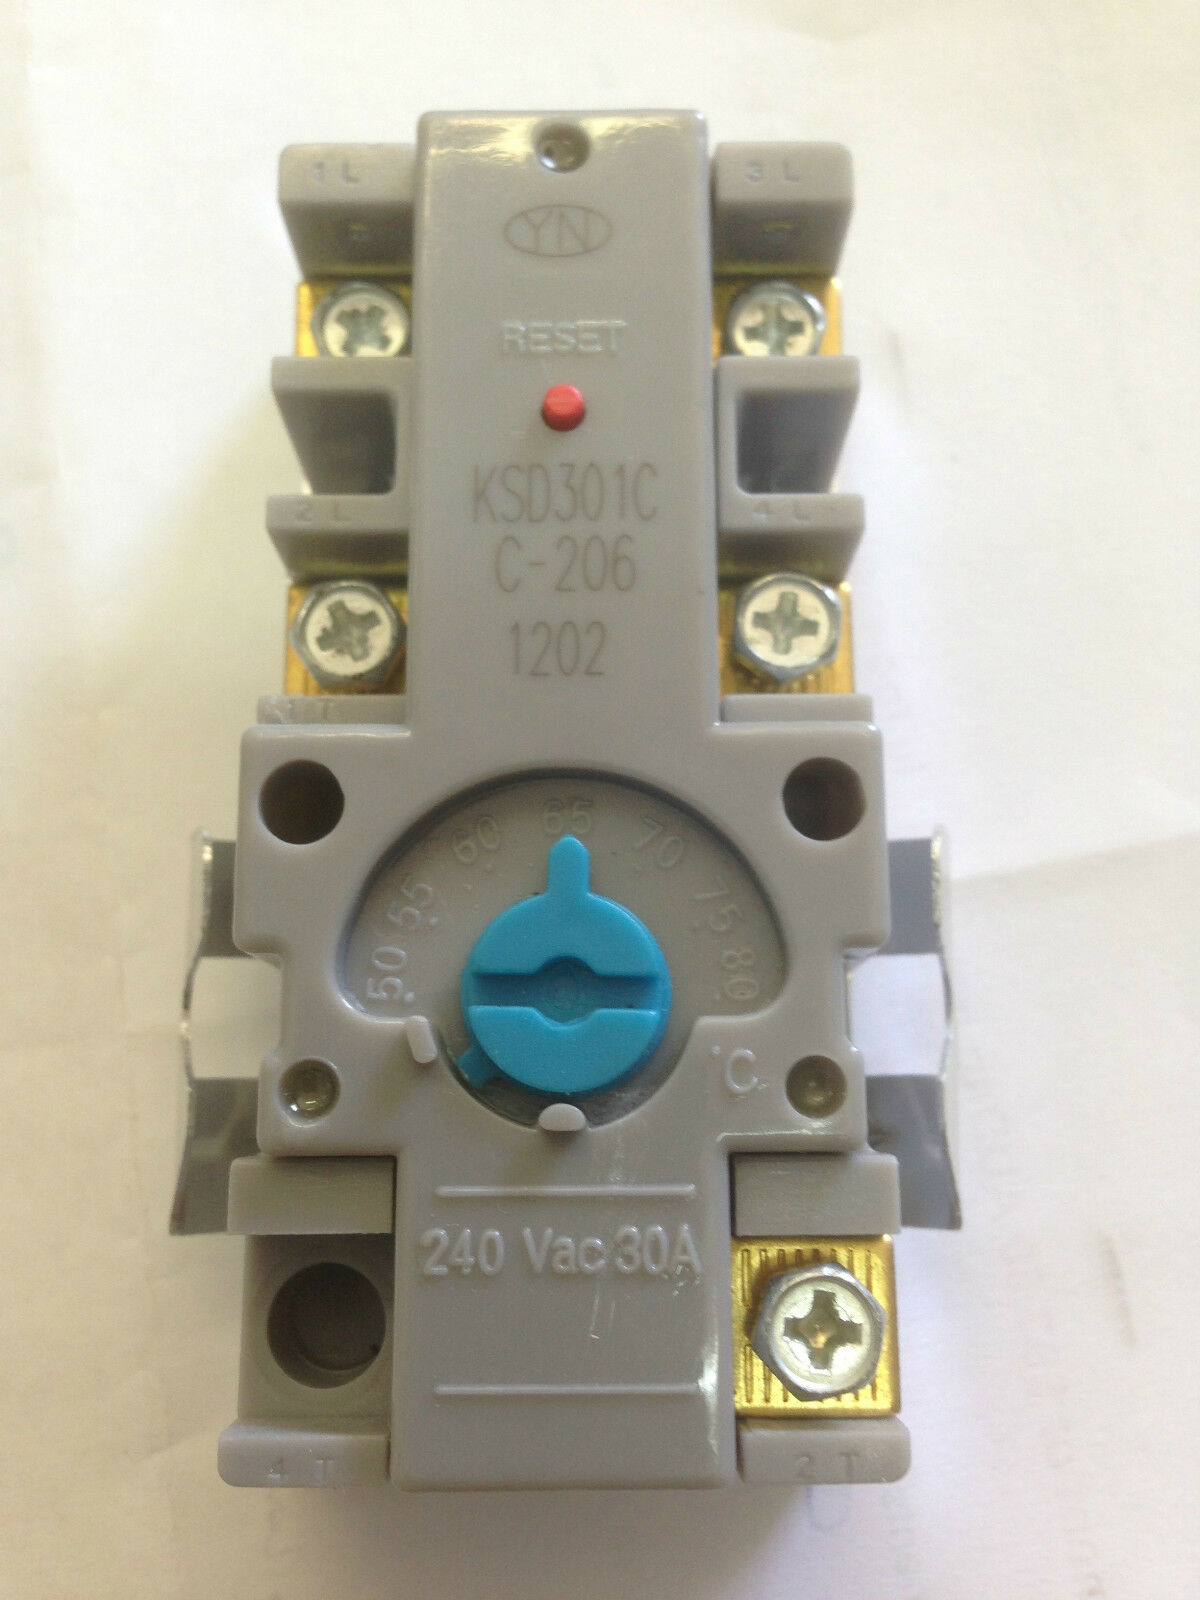 electric water thermostat 50 80c st1203133 wim2 70 ksd301c c206 aud 25 00 picclick au